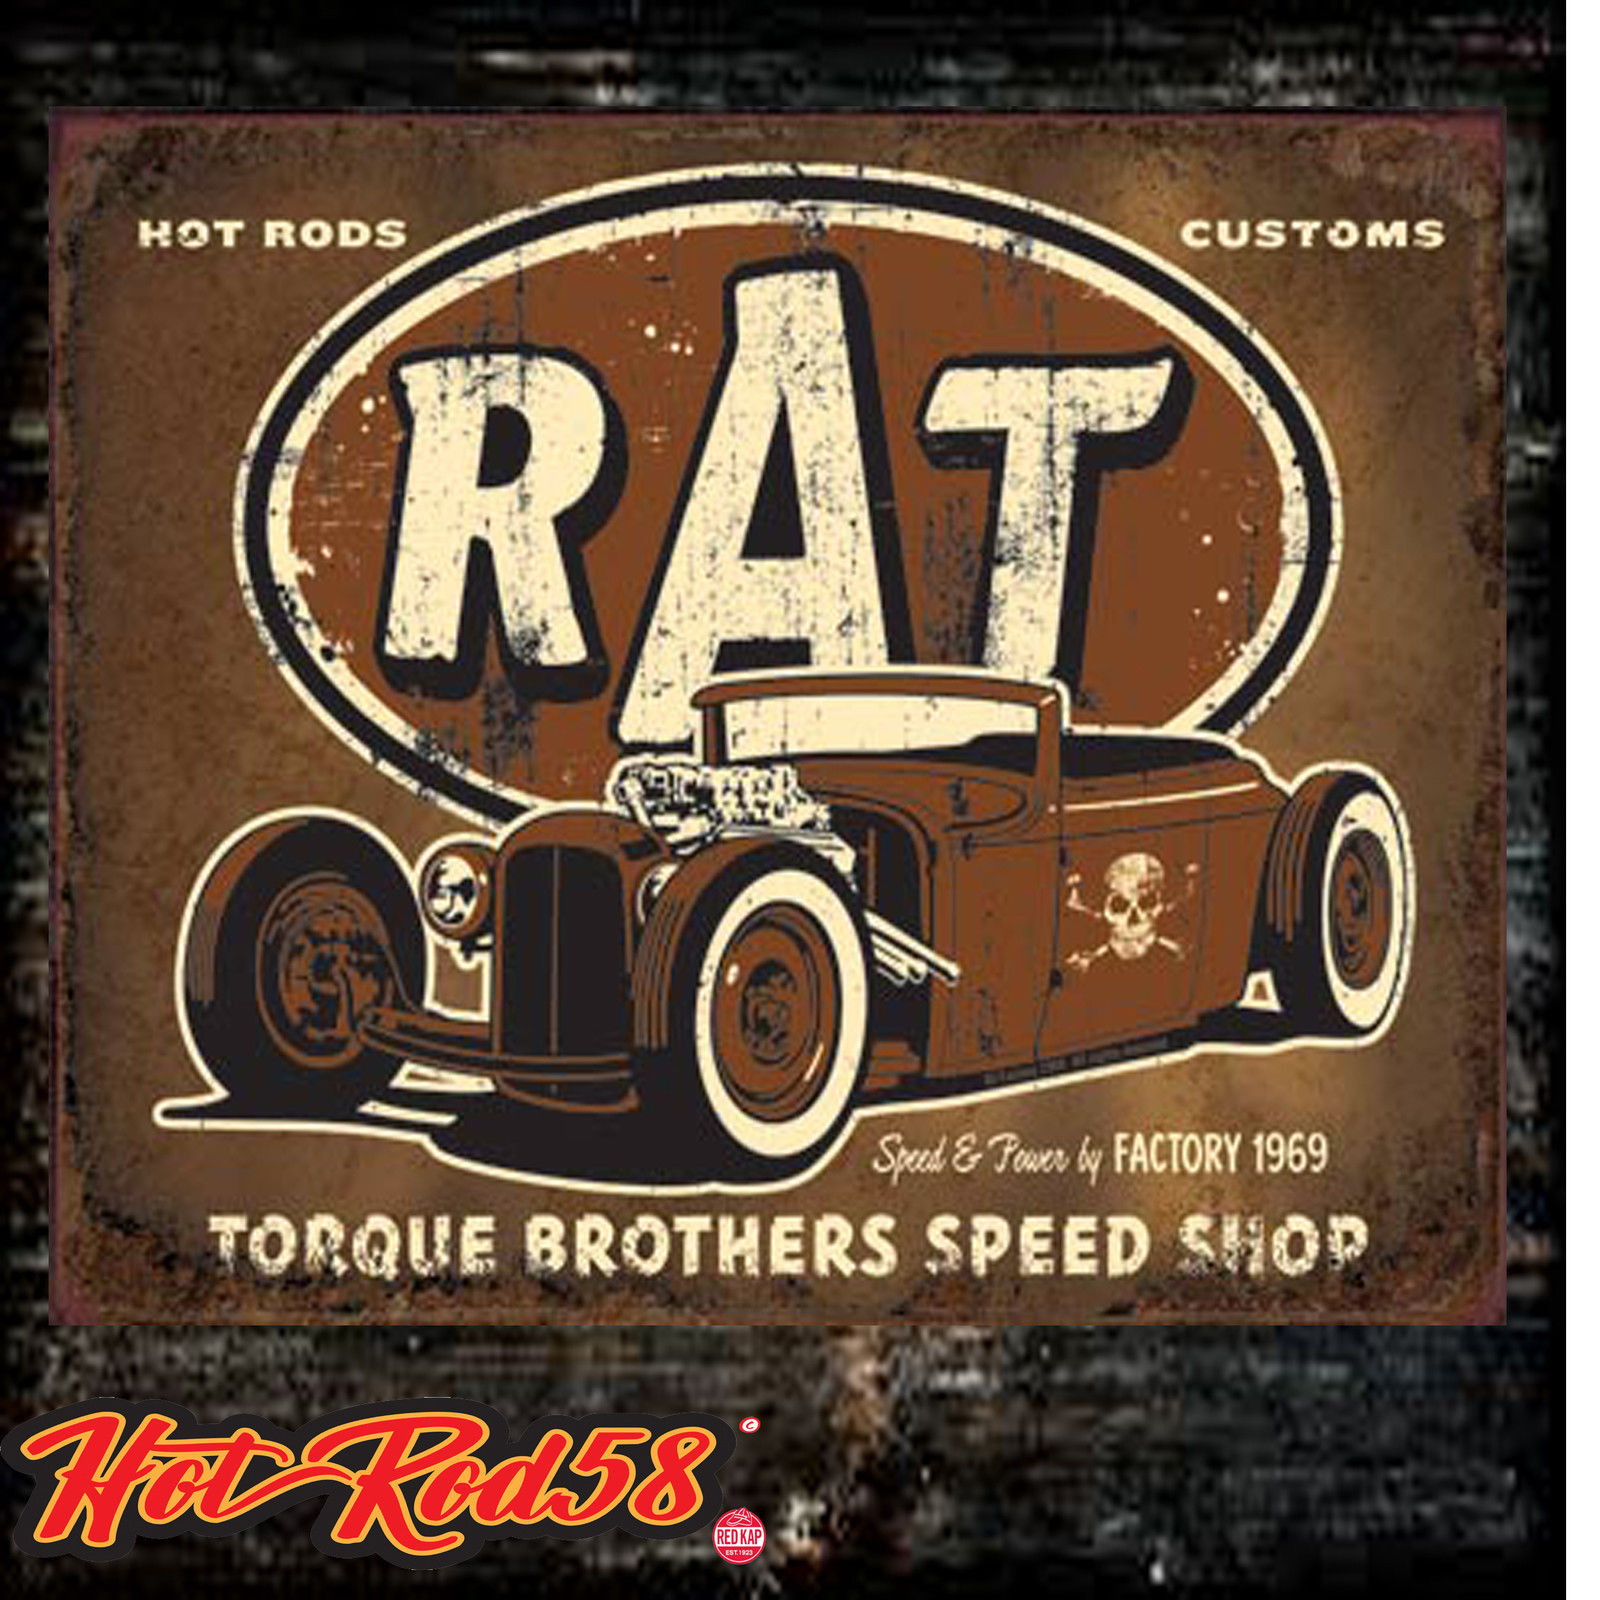 Hotrod Metal Tin Wall Sign Plaque Rat Rod Garage American Vintage Classic Car